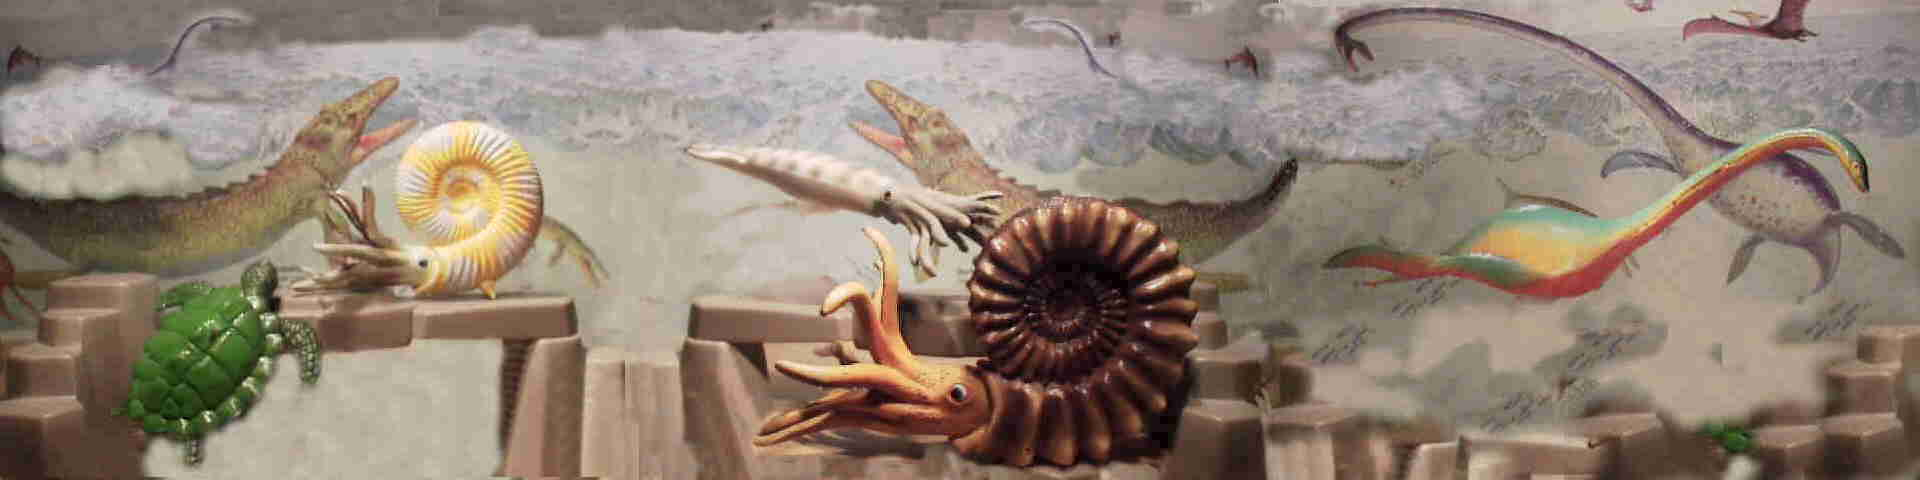 Ammonites and a Belemnite from Bullyland, and a Plesiosaurus from the Laramie play set, strongly reminiscent of the Invicta figure.